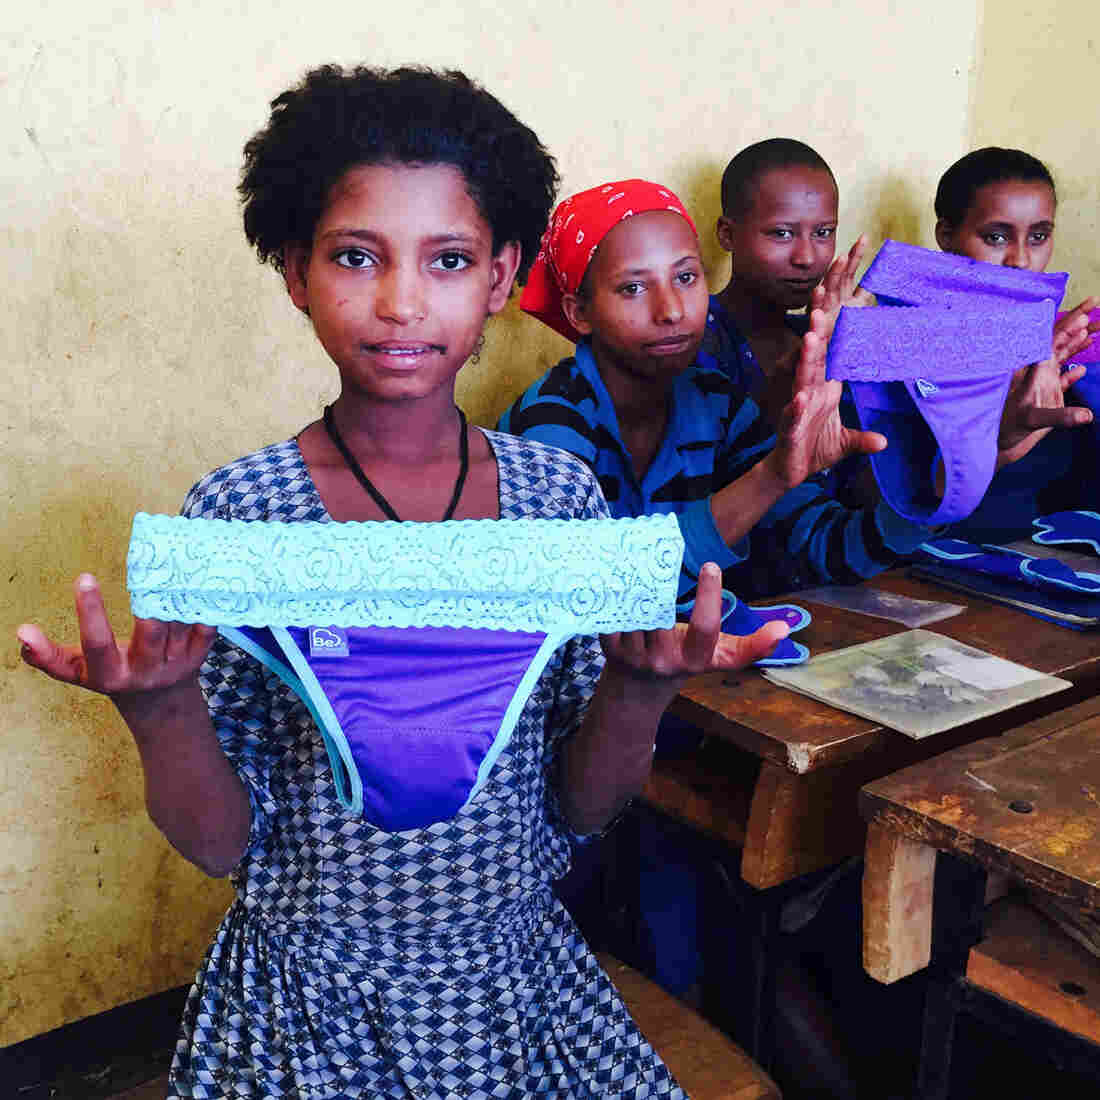 Schoolgirls in Ethiopia examine a new feminine product: underwear with a pocket for a menstrual pad.